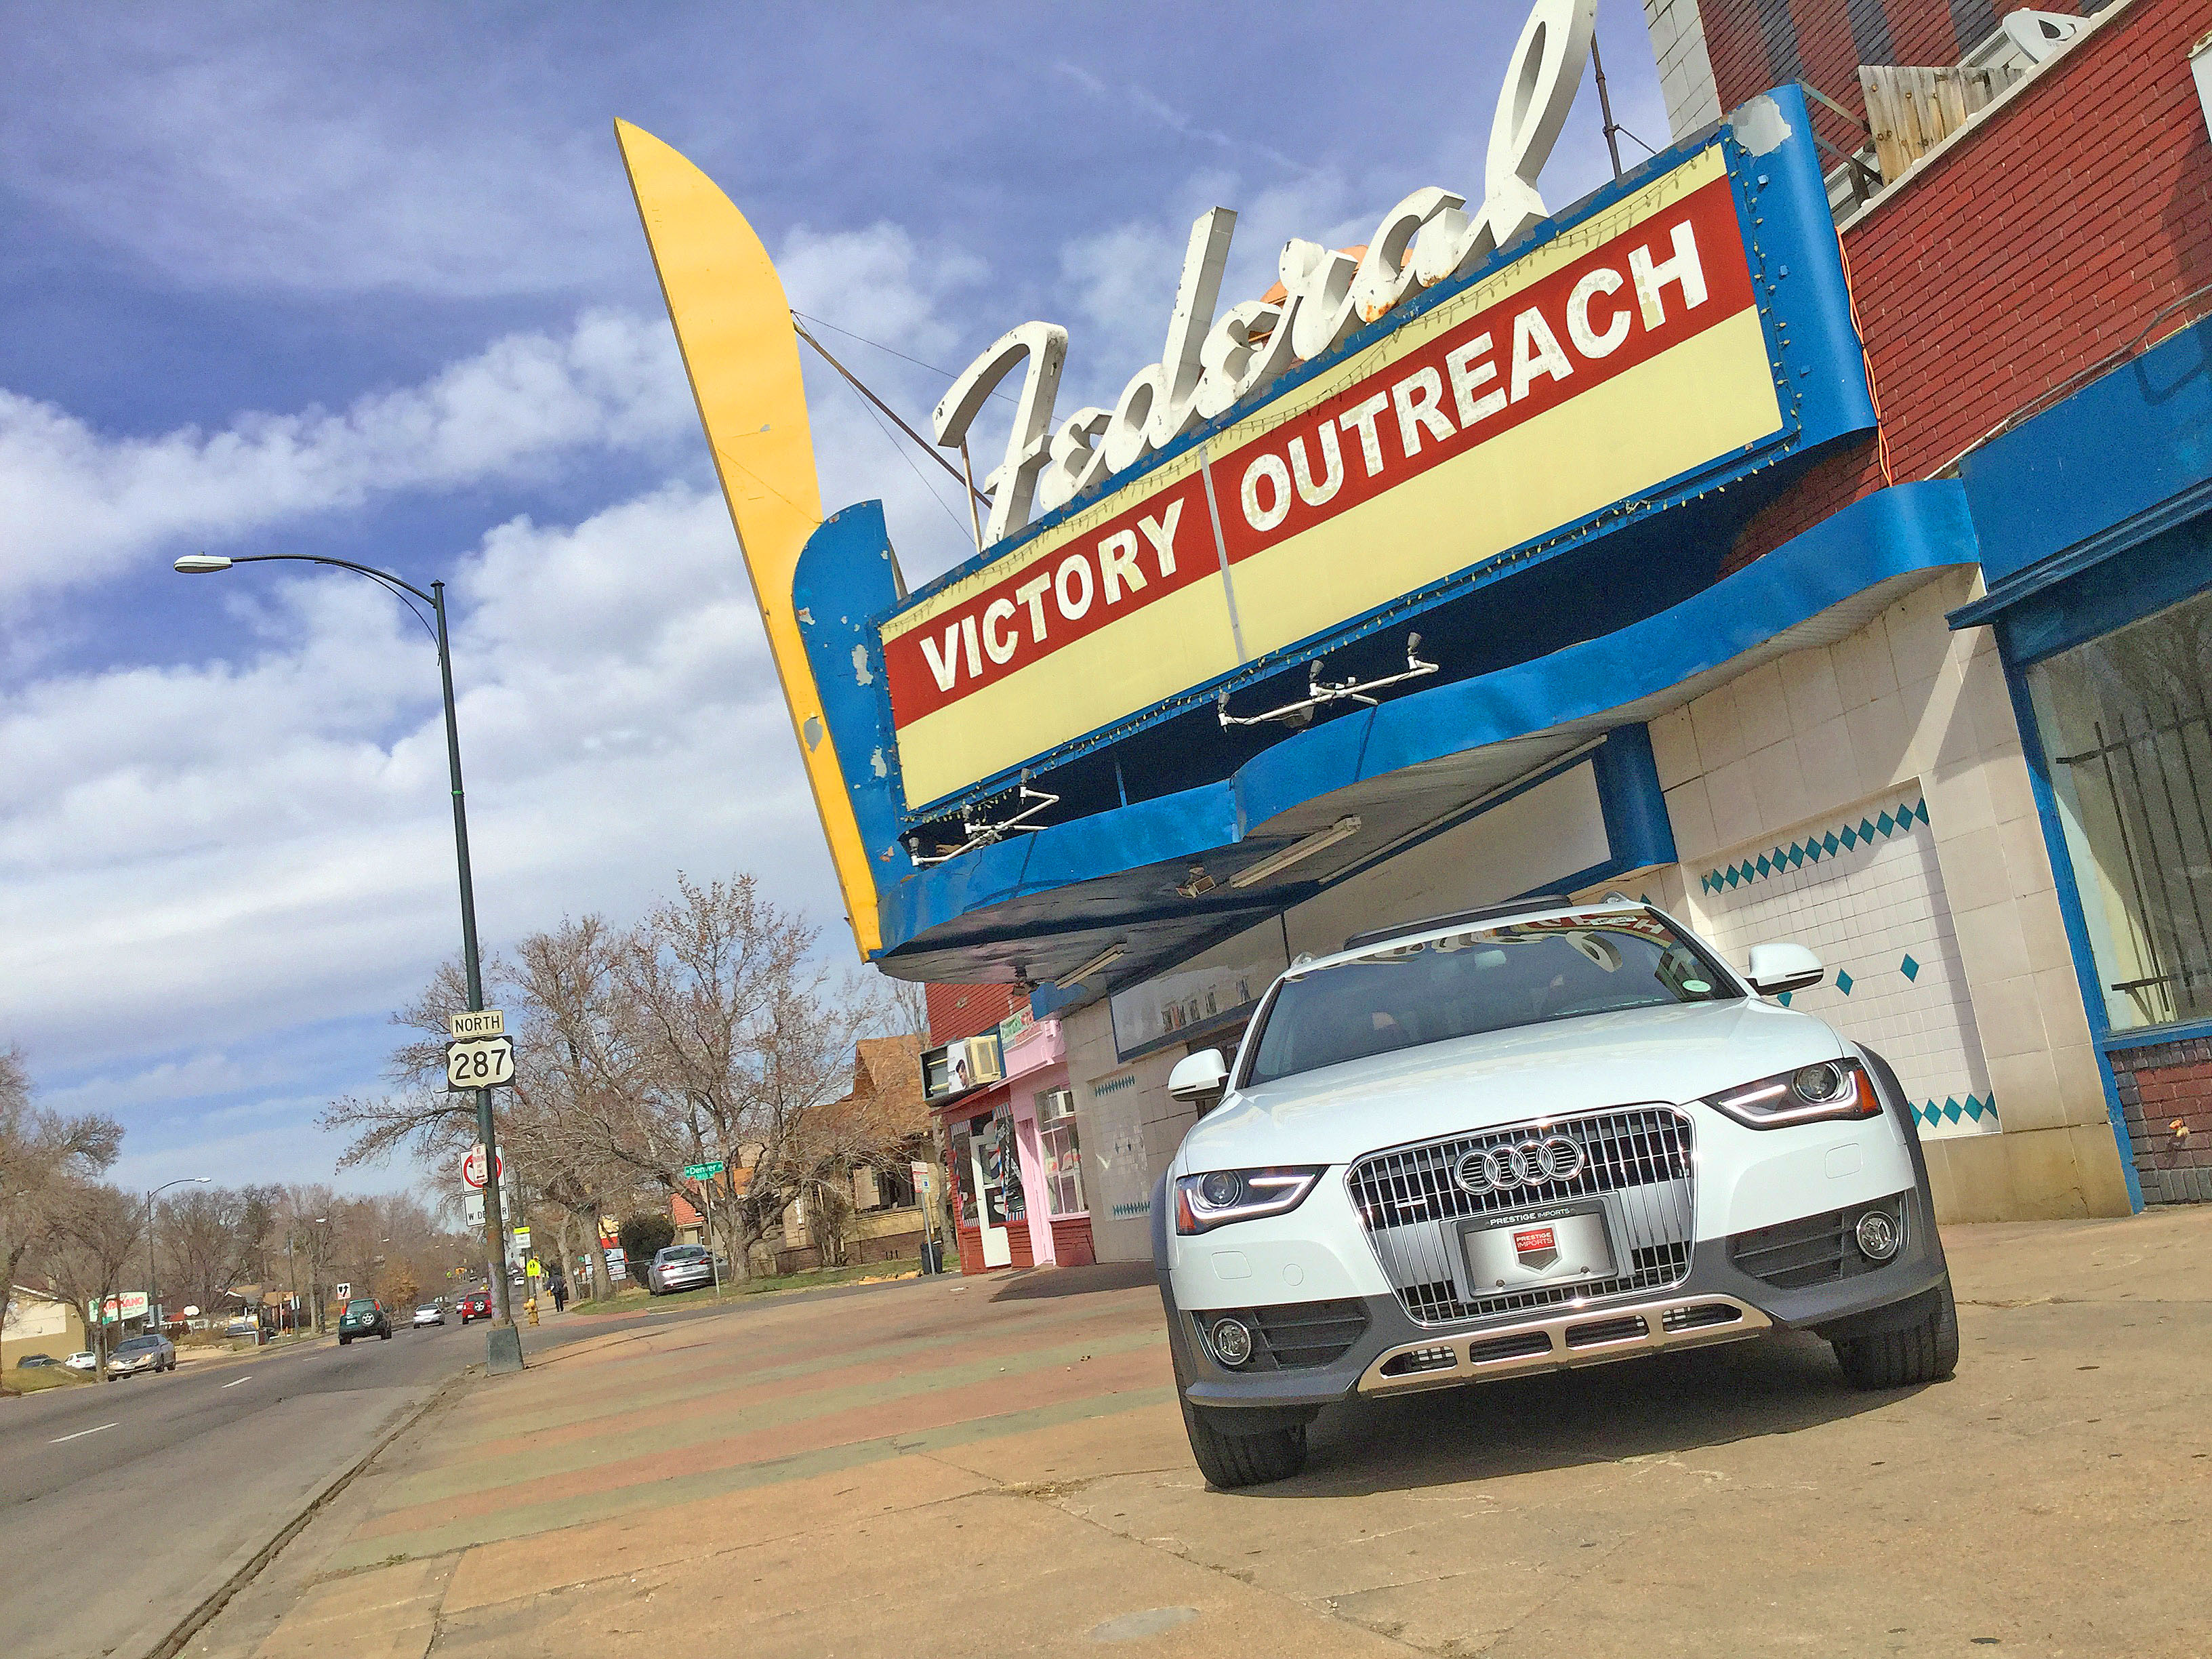 An Audi allroad sits in front of the Federal Victory Outreach Theater in the Highland area of Denver